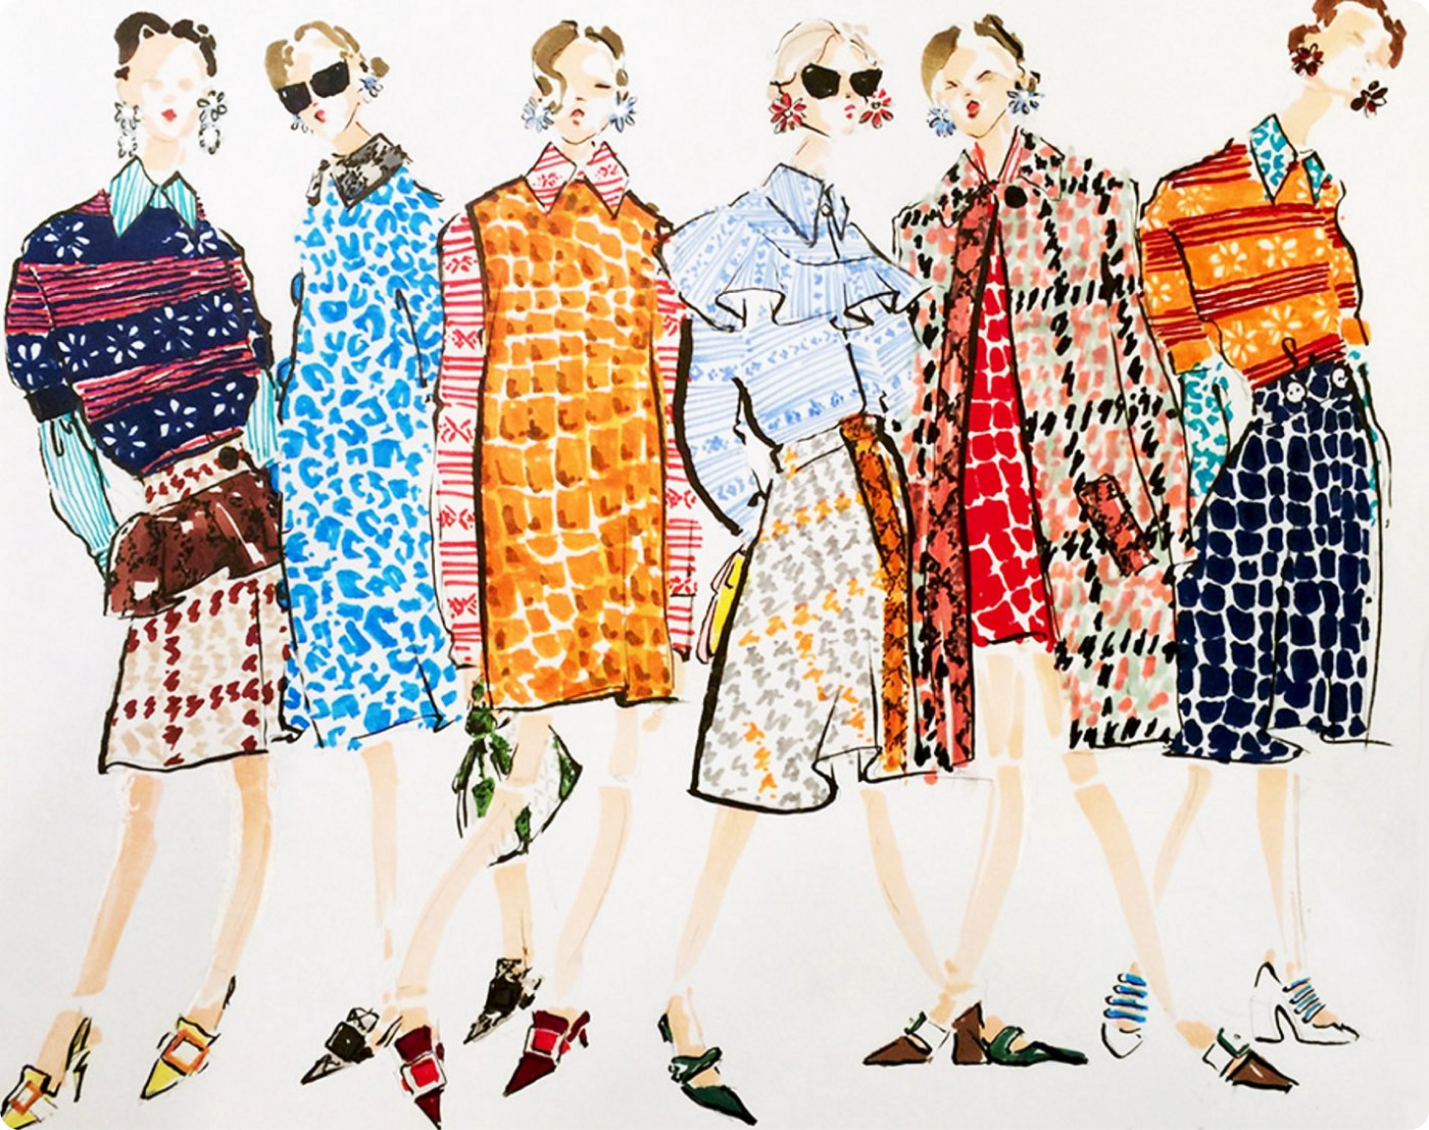 fashion illustrations of women in different outfits.